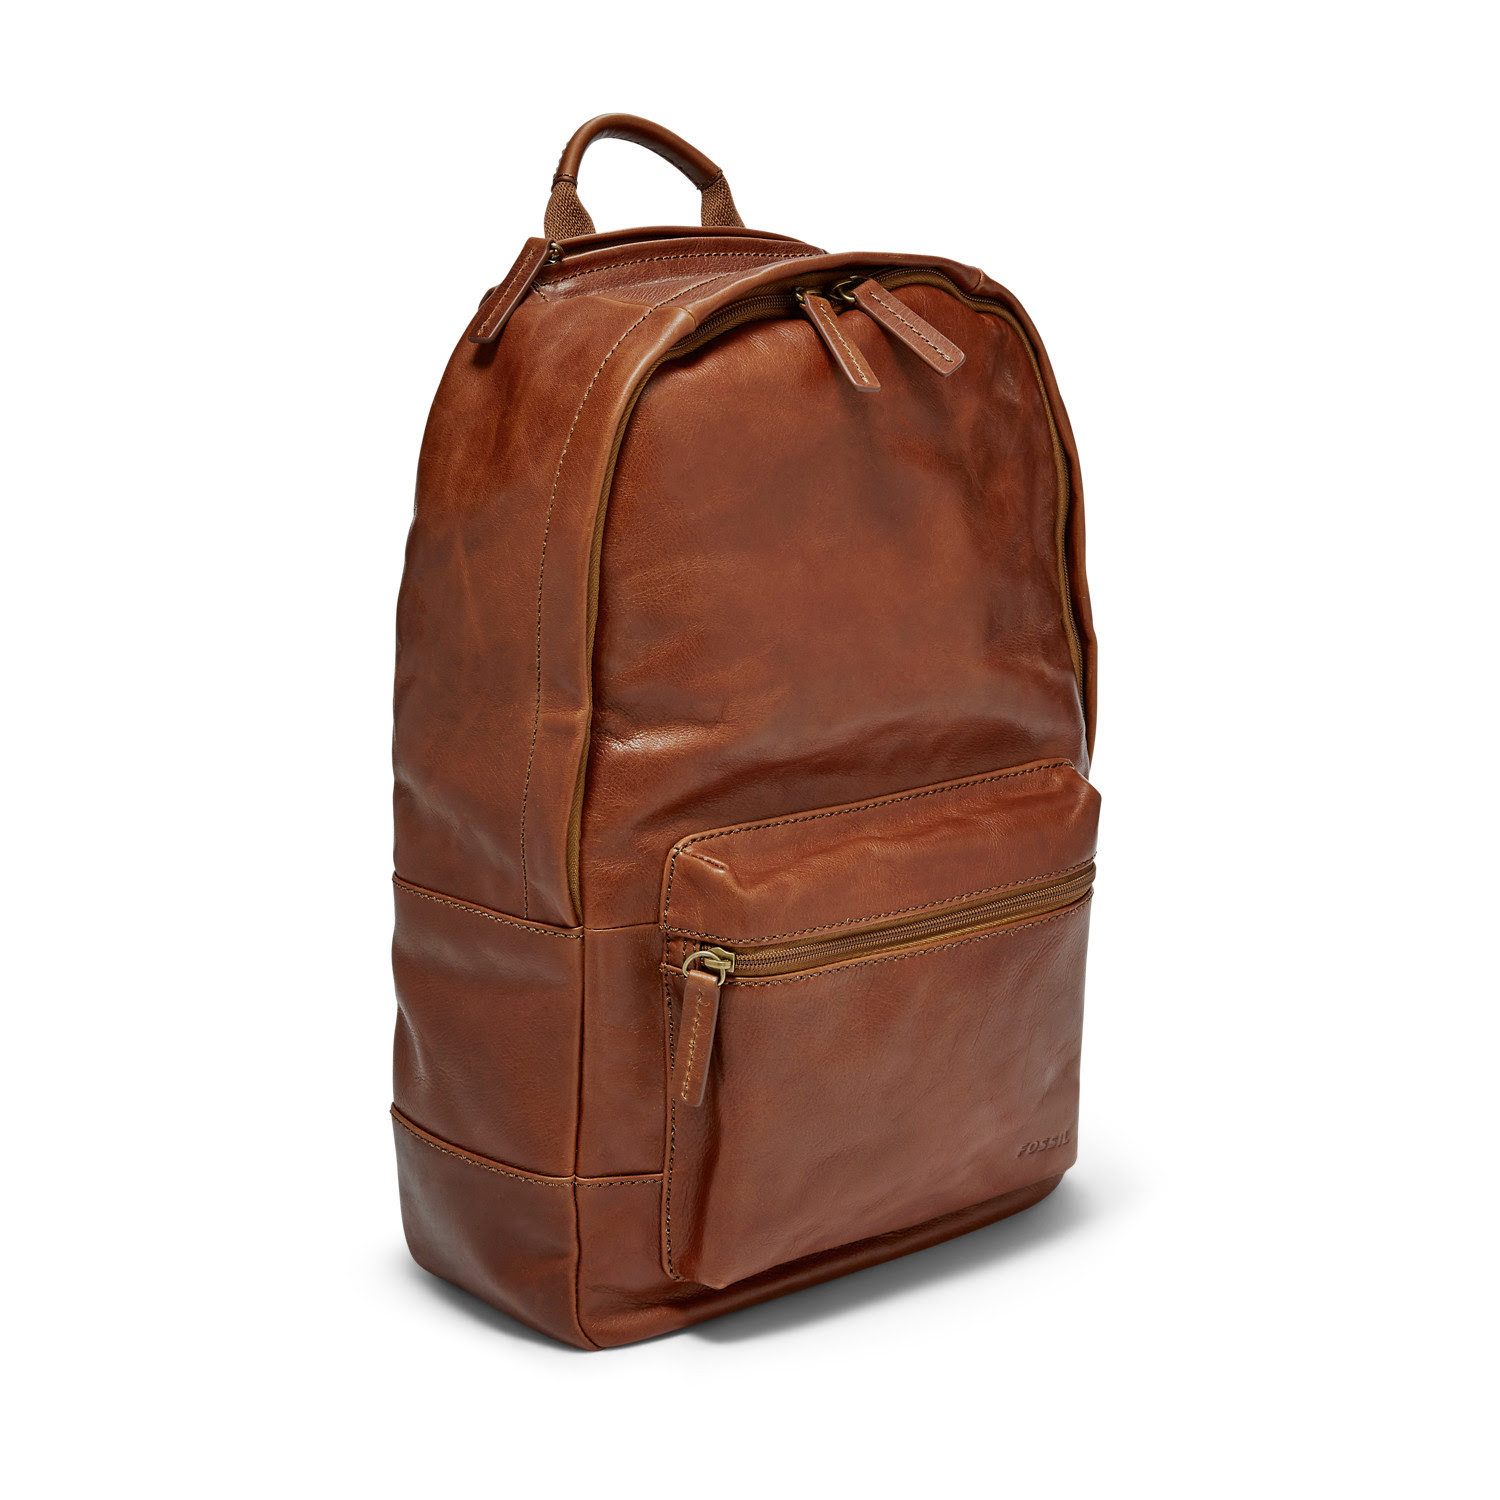 Image result for Leather backpack